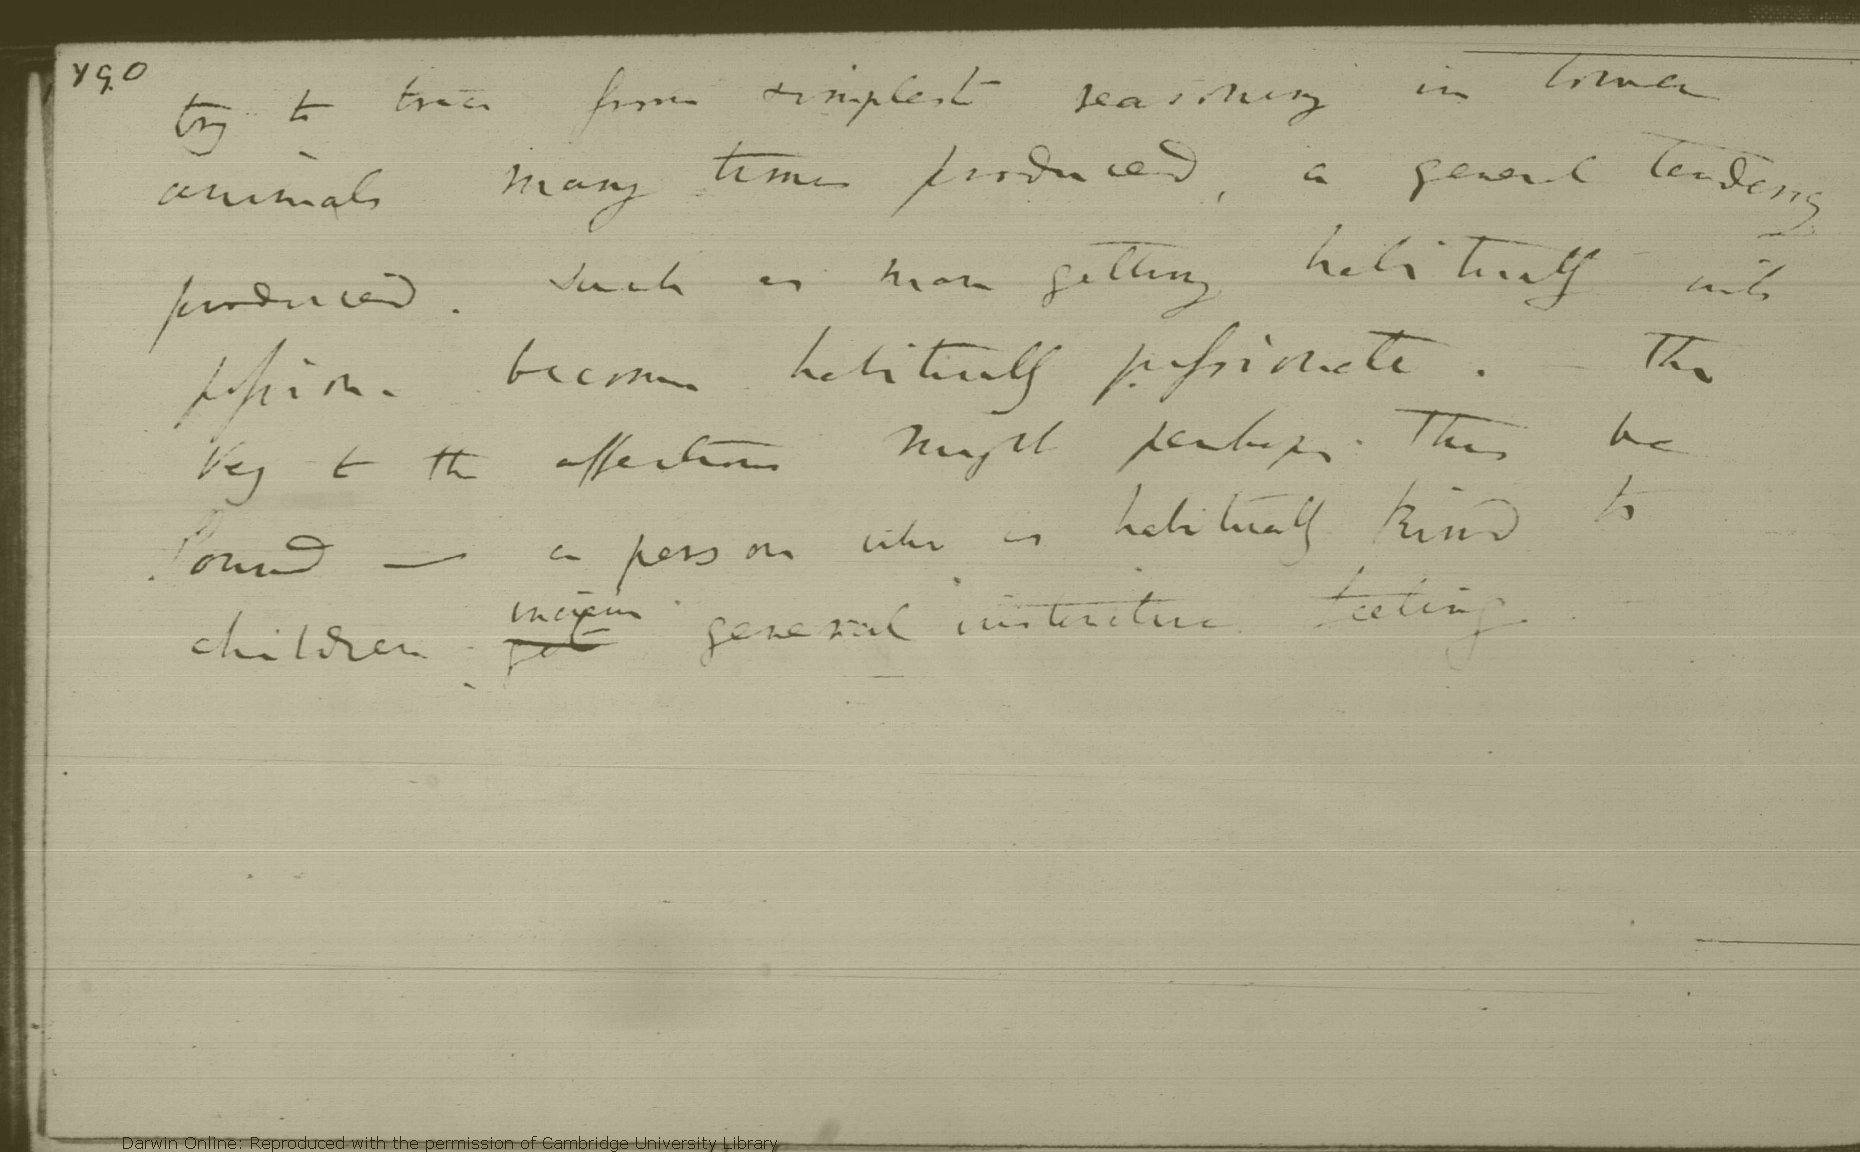 Photograph of Darwin's notebook C, p. 166